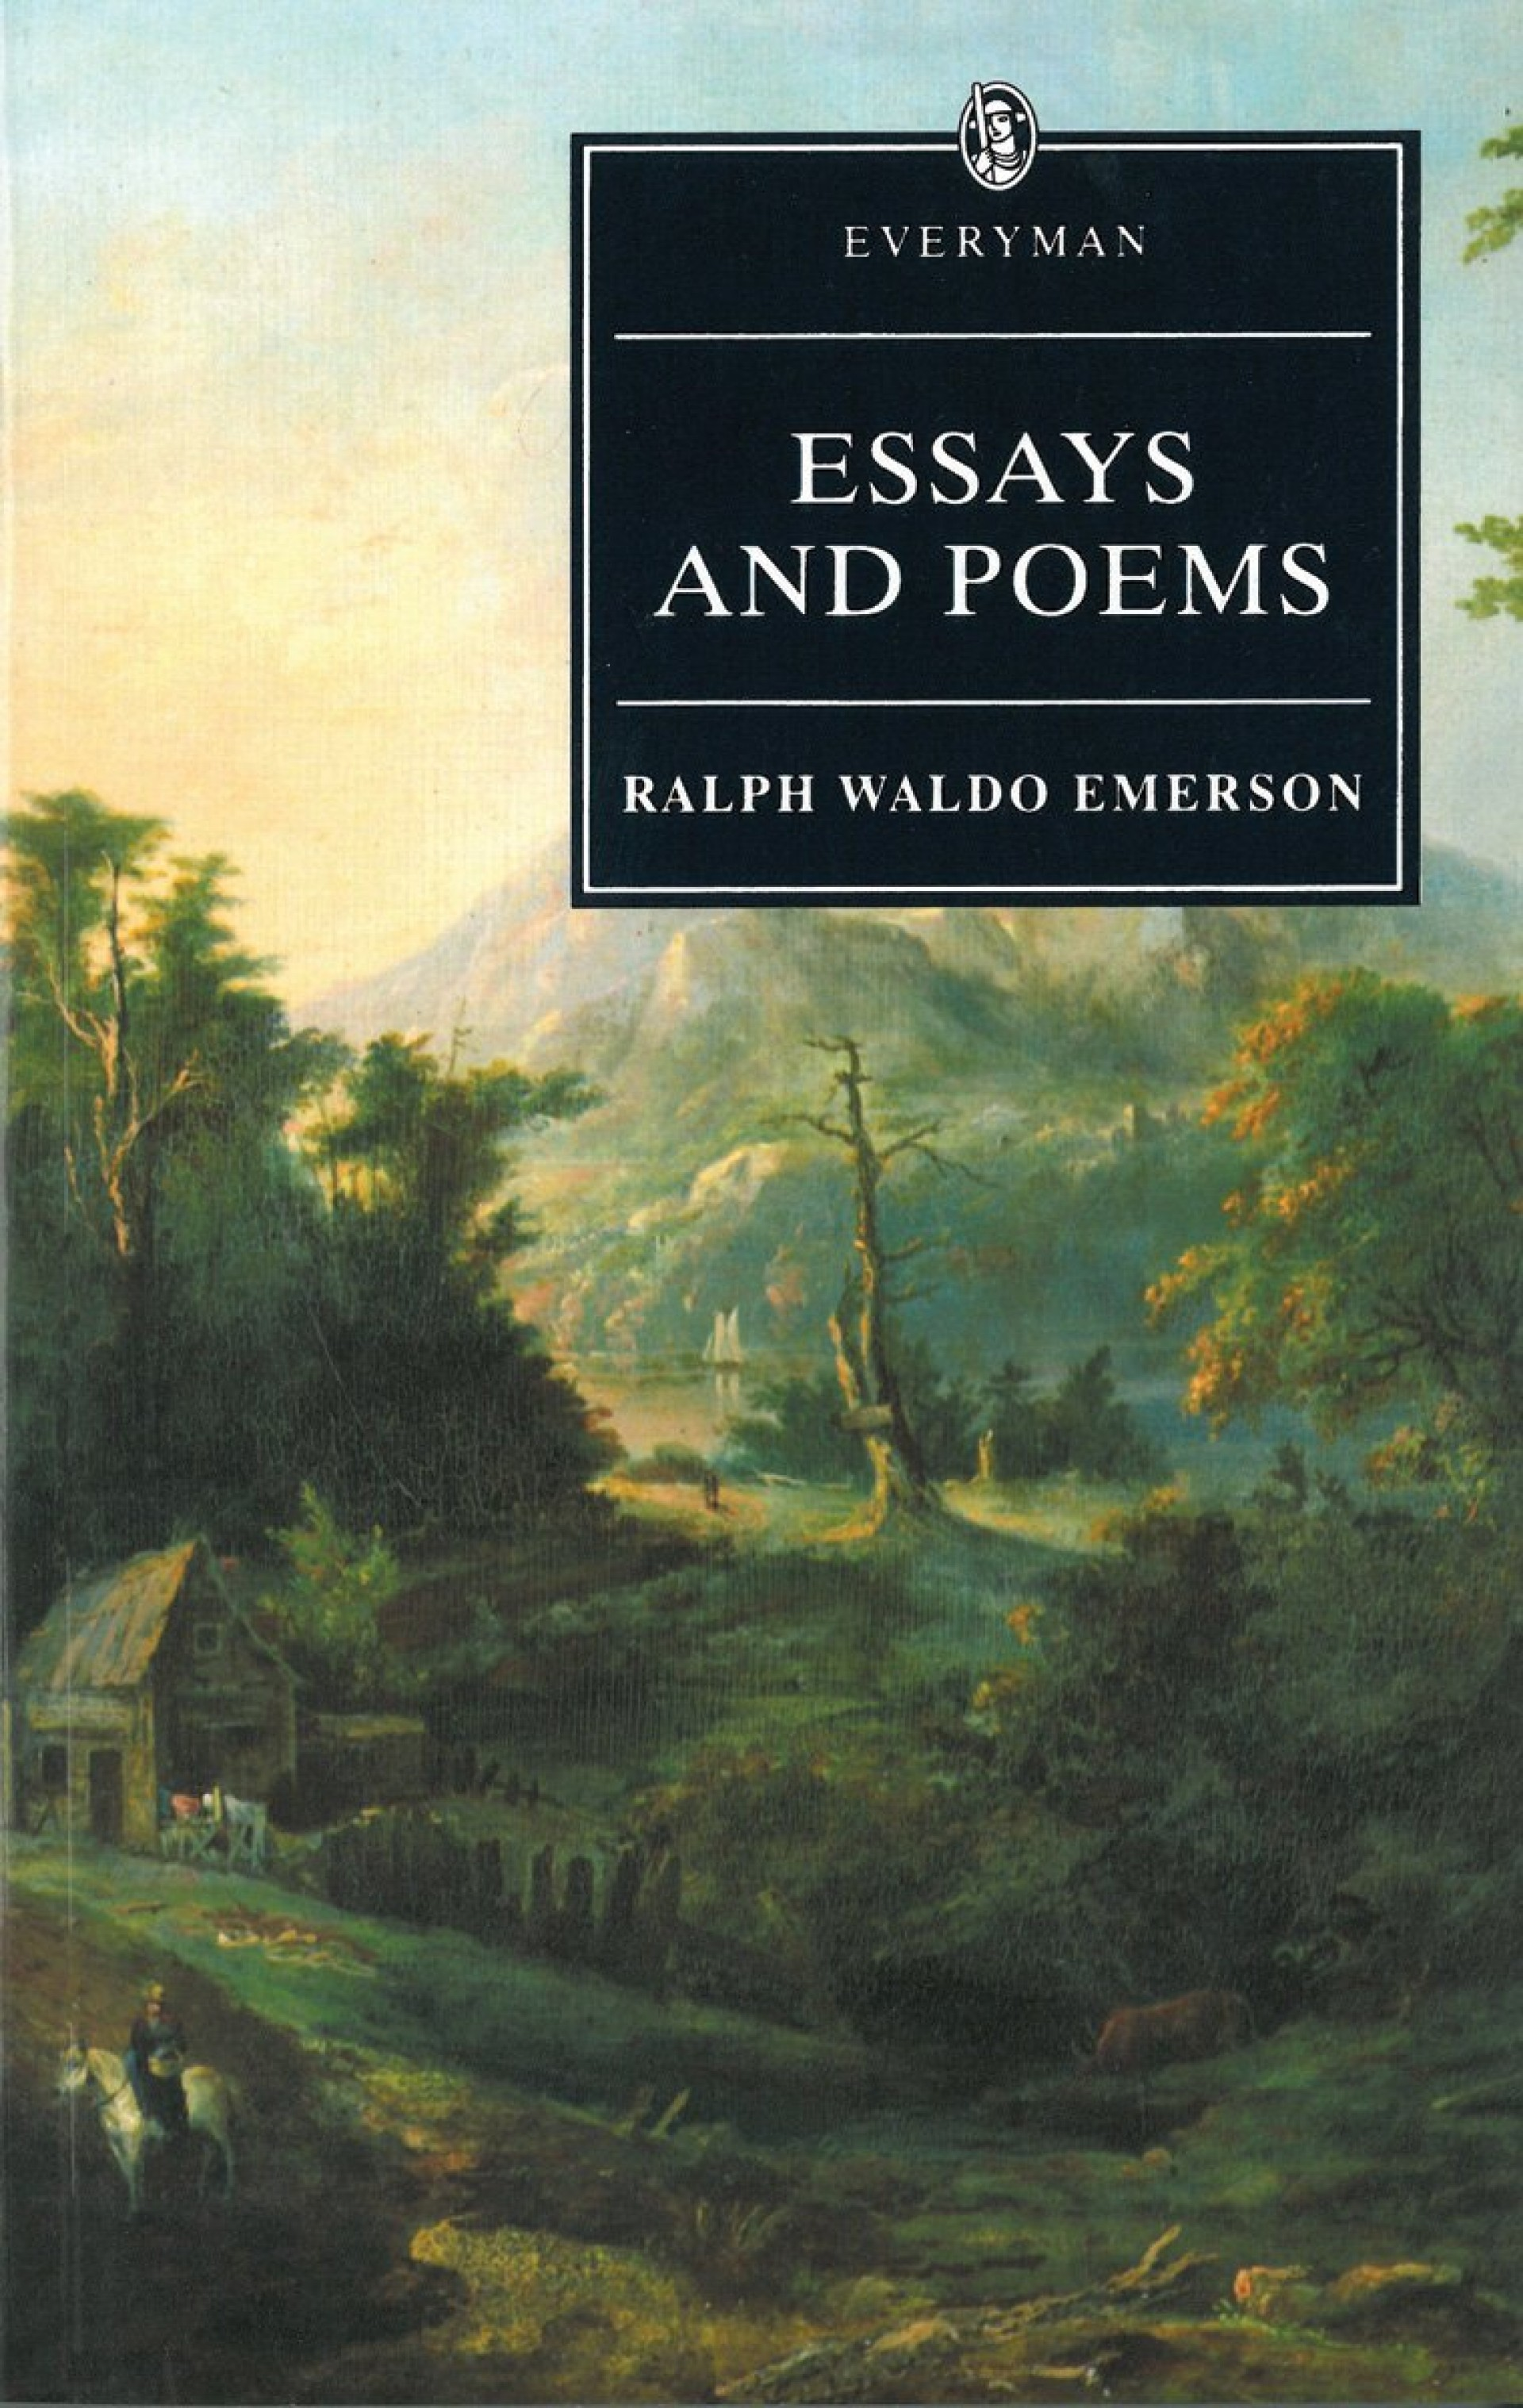 005 717qrf2ql9l Ralph Waldo Emerson Essays Essay Unusual Nature And Selected By Pdf Download First Second Series 1920